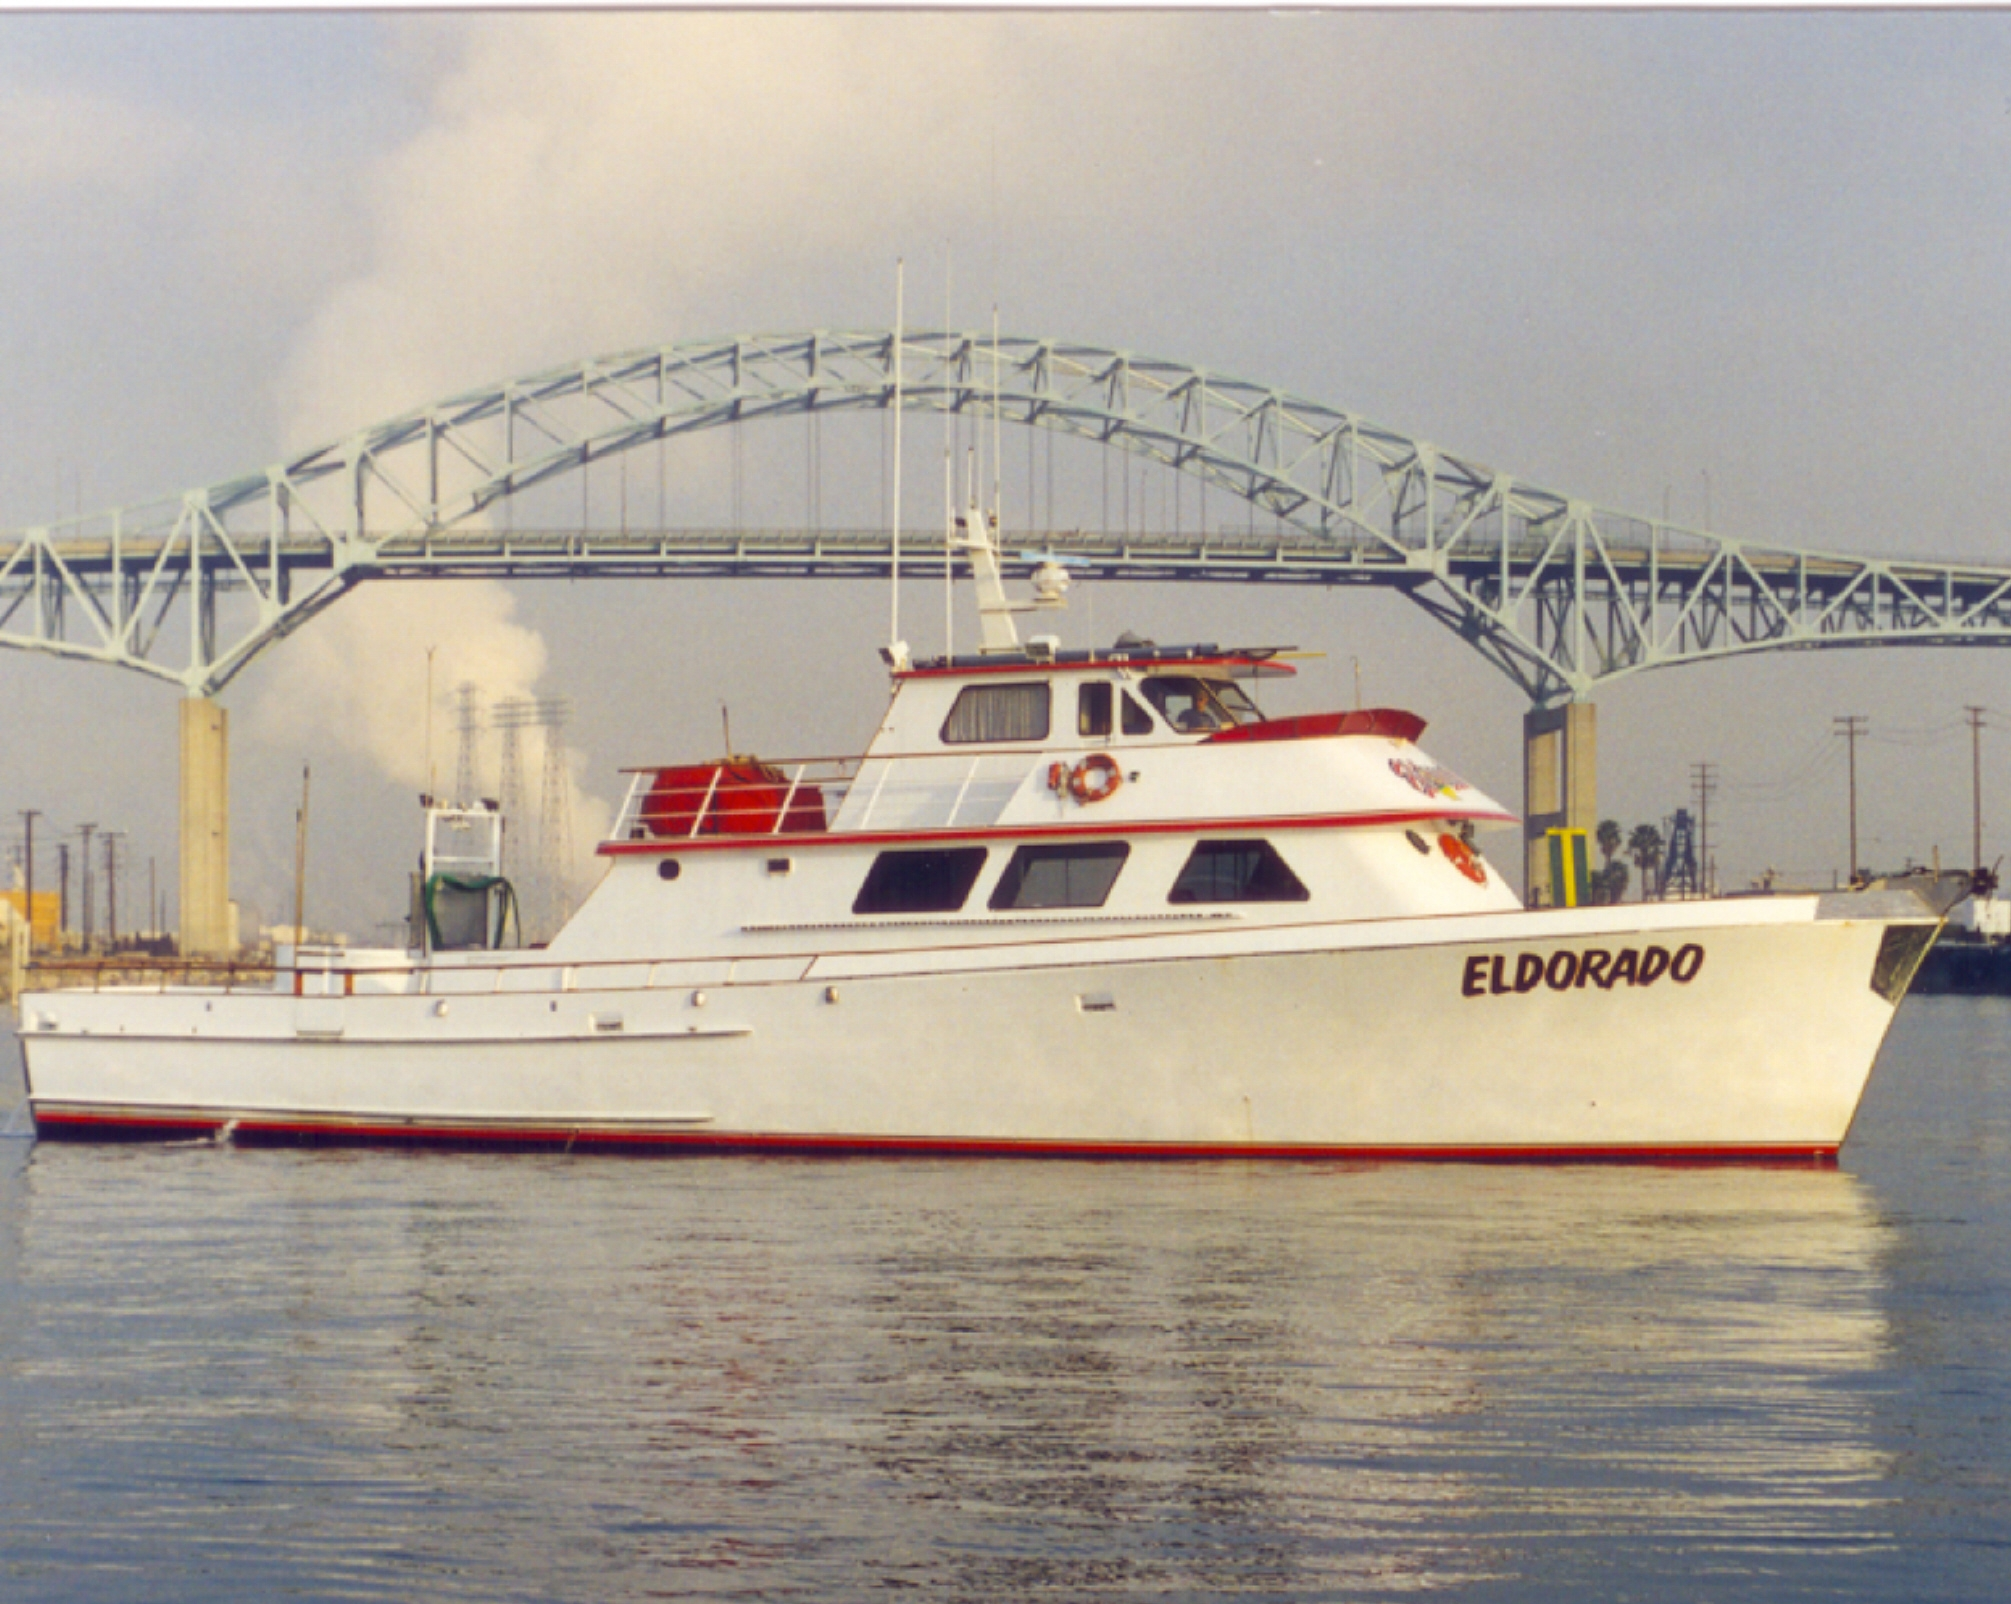 Eldorado sportfishing for Long beach fishing boat